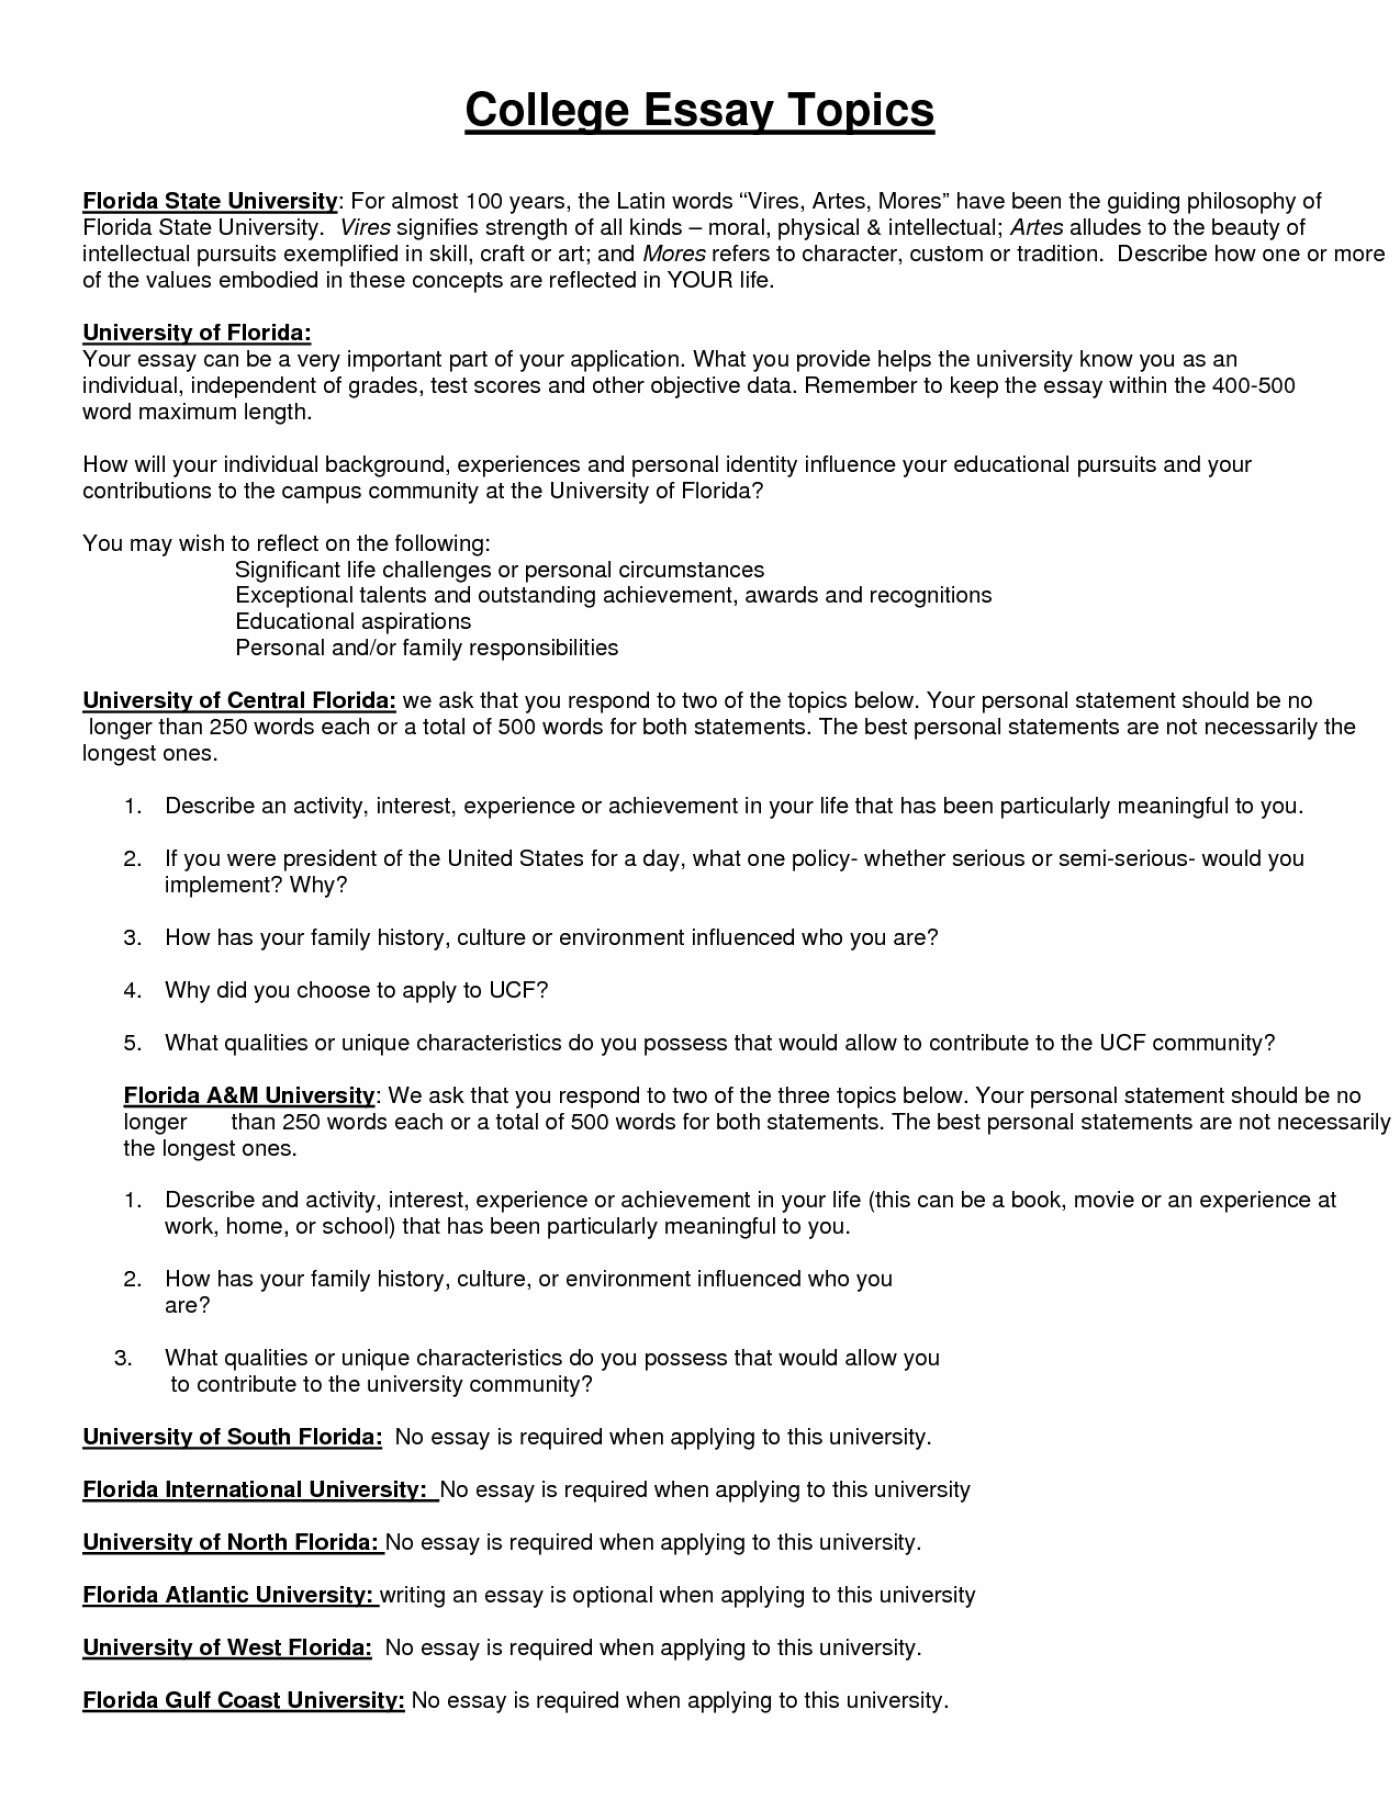 006 Free Topic Essay Resume Examples Templates How To Write Good For College Example Best Surprising Topics Research Paper Student High School Argumentative 1400